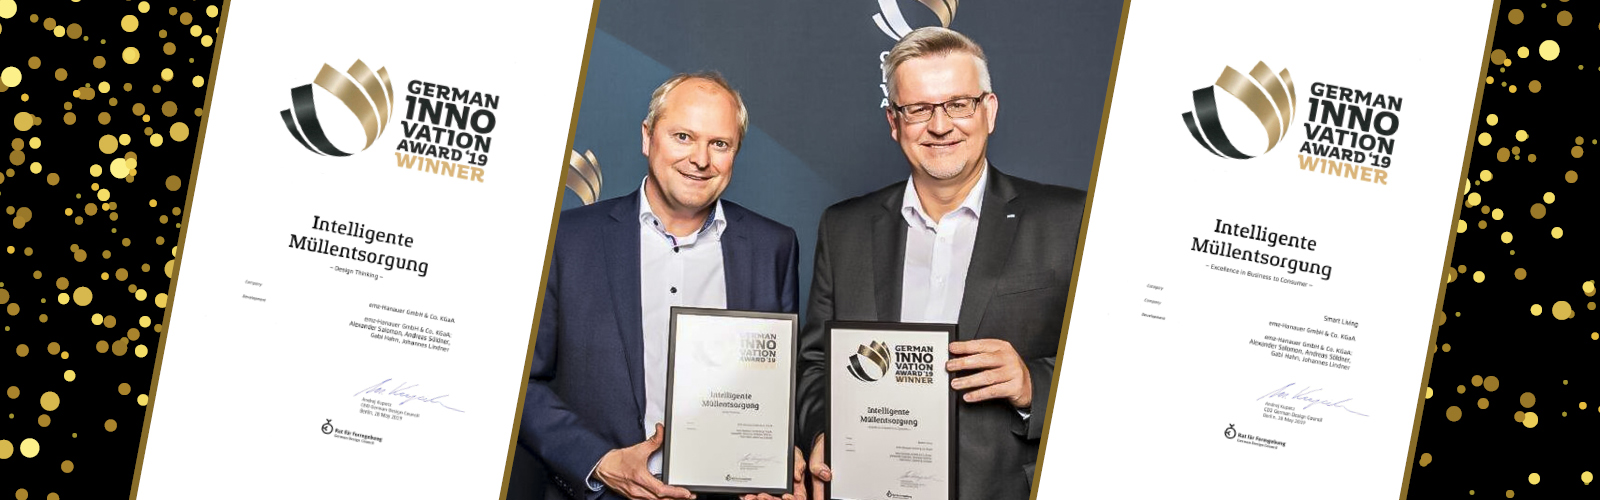 egate digi wins German Innovation Award 2019